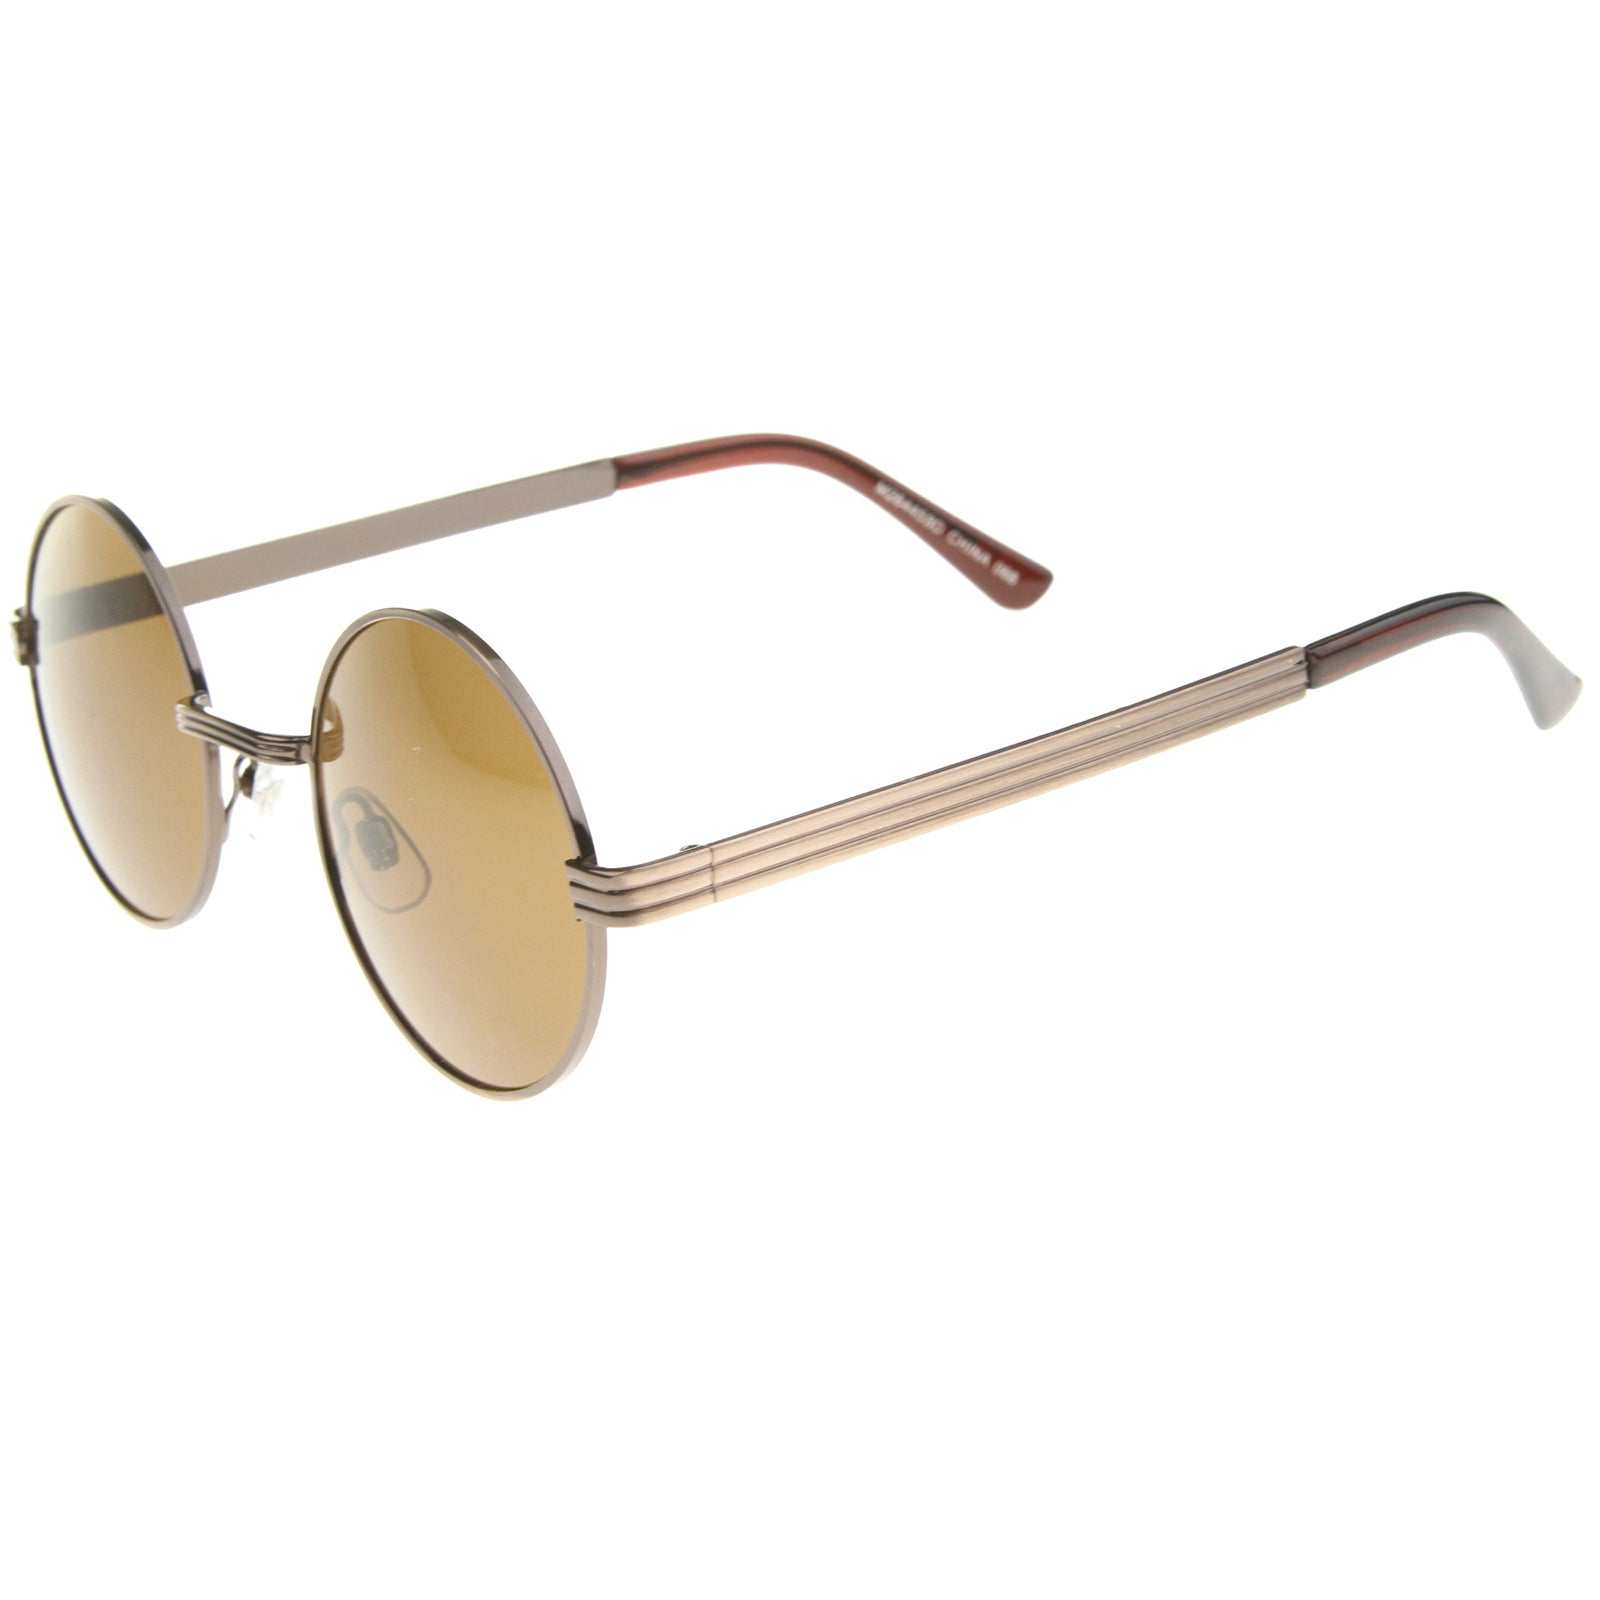 Retro Fashion Metal Textured Frame Flat Lens Round Sunglasses 50mm - sunglass.la - 15